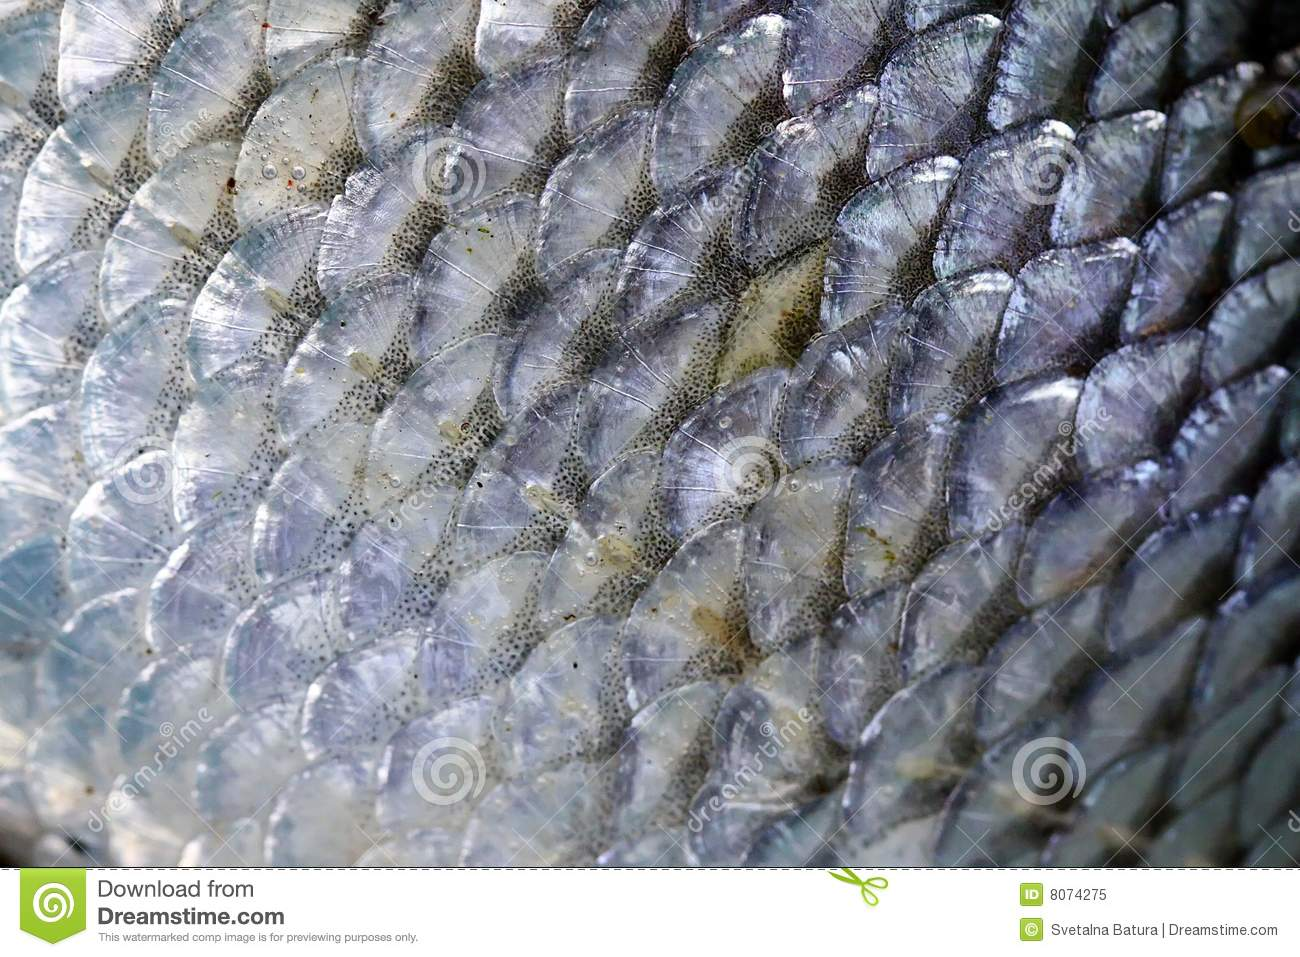 Fish scales royalty free stock photo image 8074275 for Mlf fishing scale